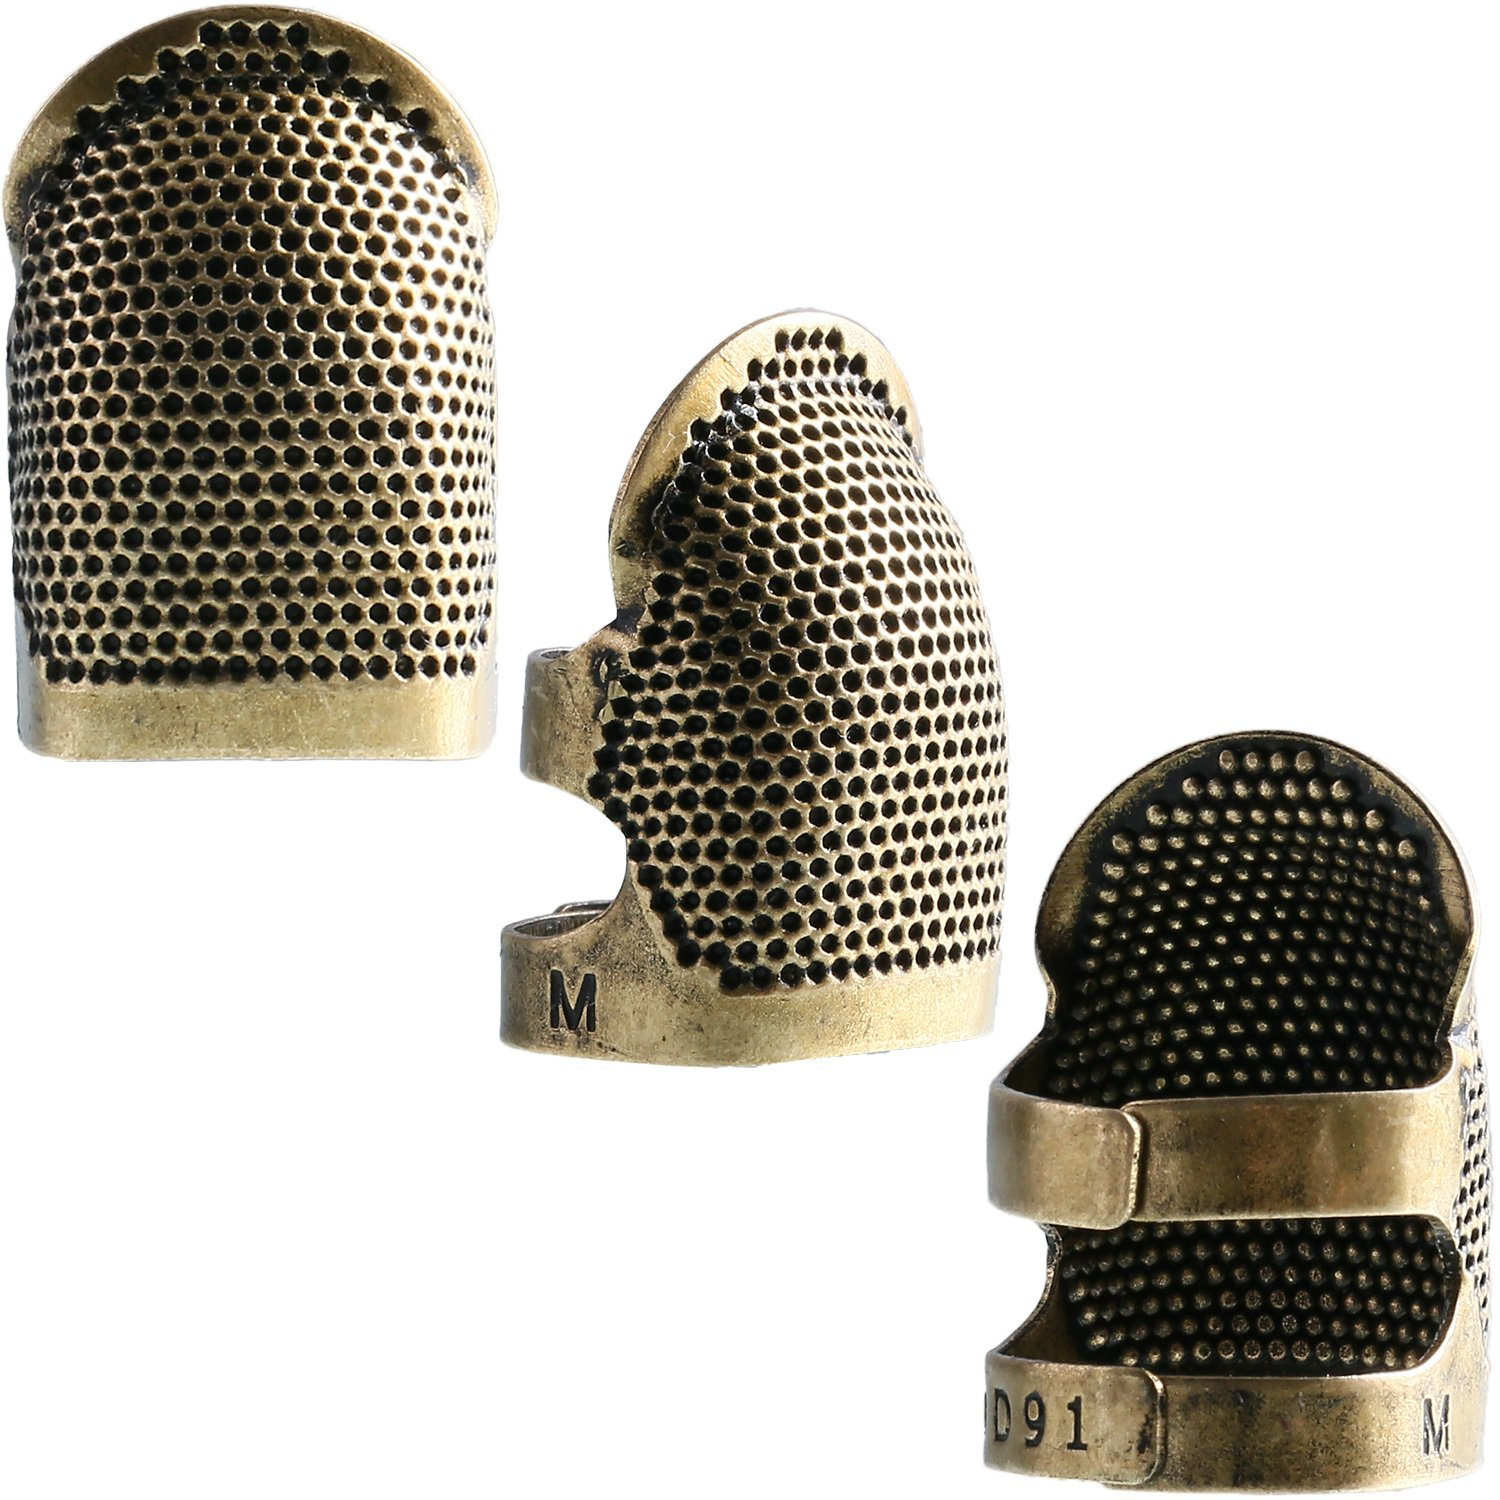 Zhanmai 3 Pieces Copper Finger Protector Thimble Adjustable Fingertip Thimble for Sewing Embroidery Needlework, Medium